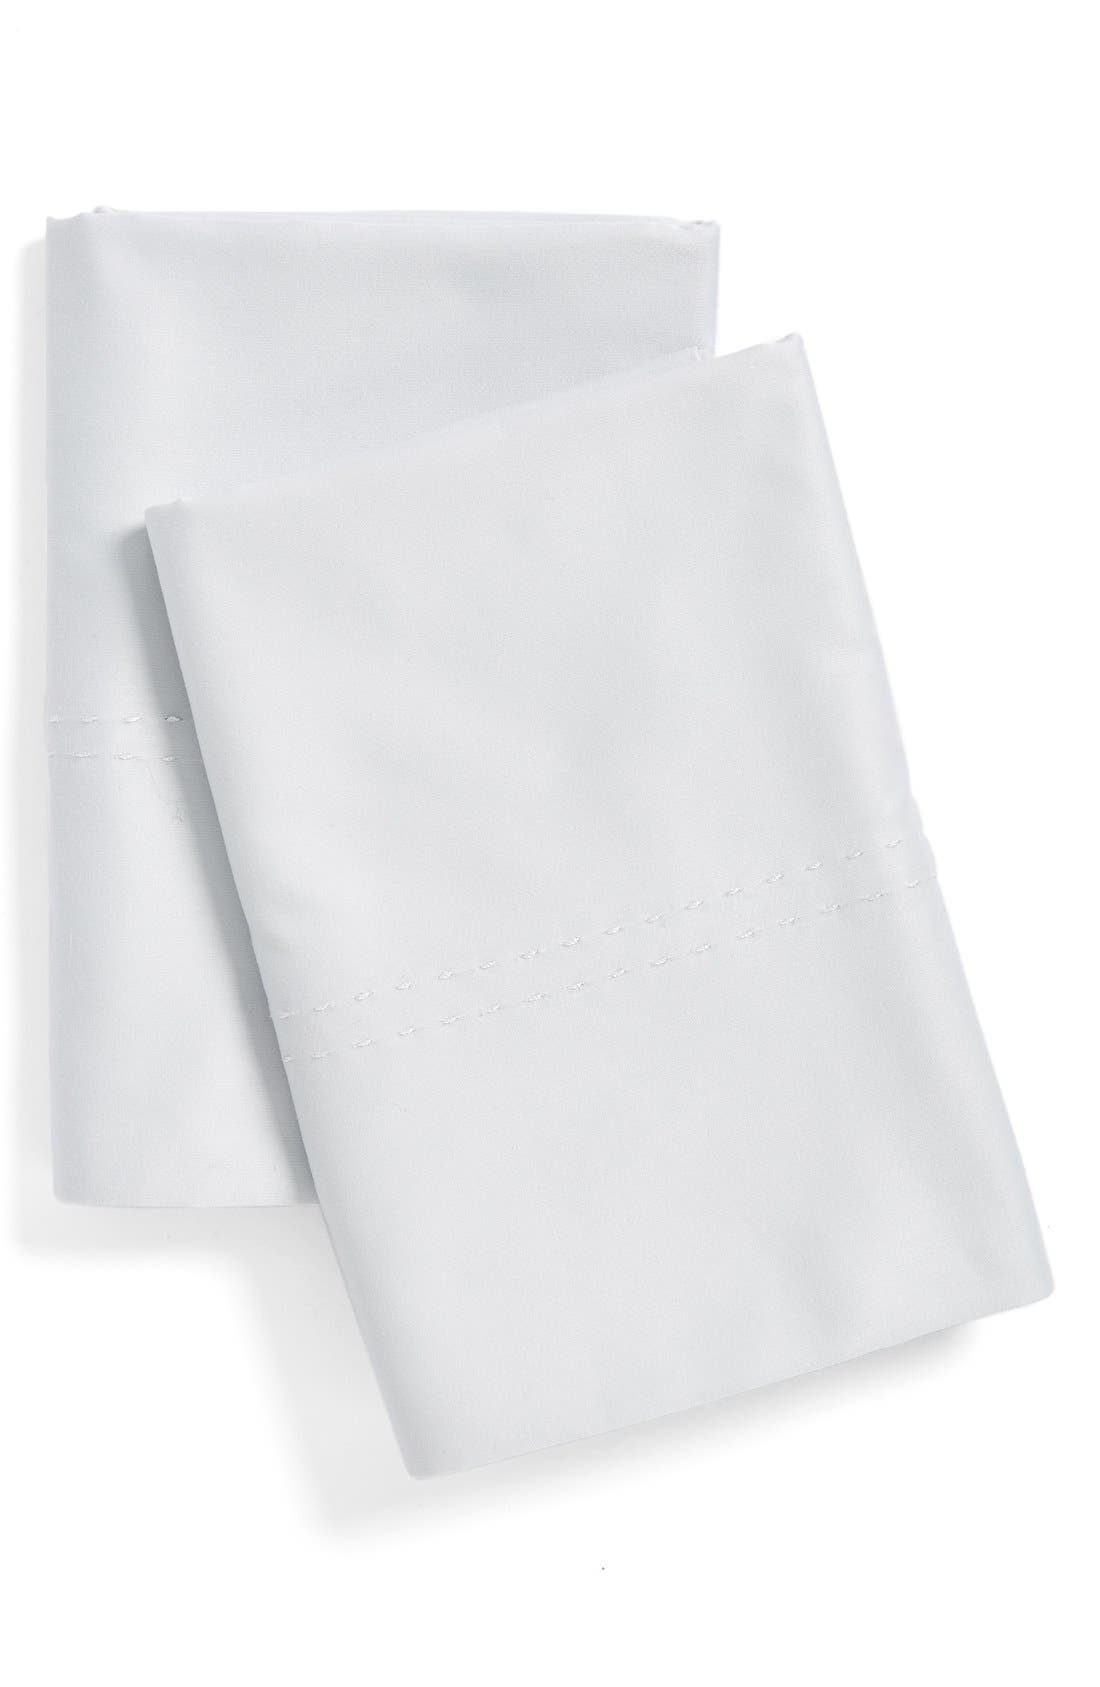 Nordstrom at Home 400 Thread Count Standard Pillowcases